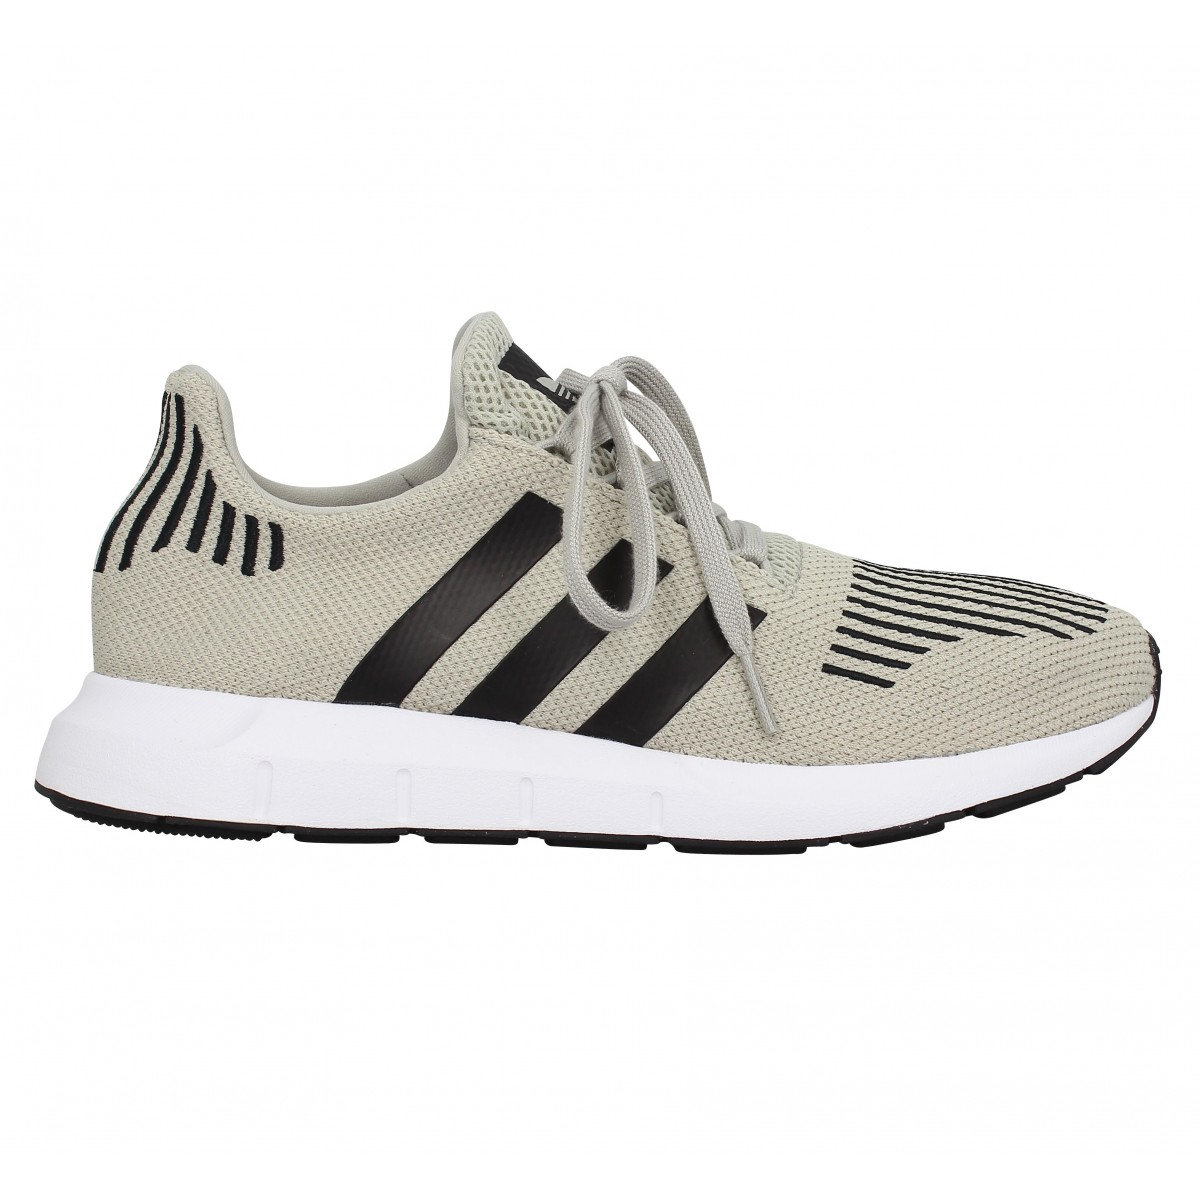 ADIDAS Swift Run toile Homme Sesame